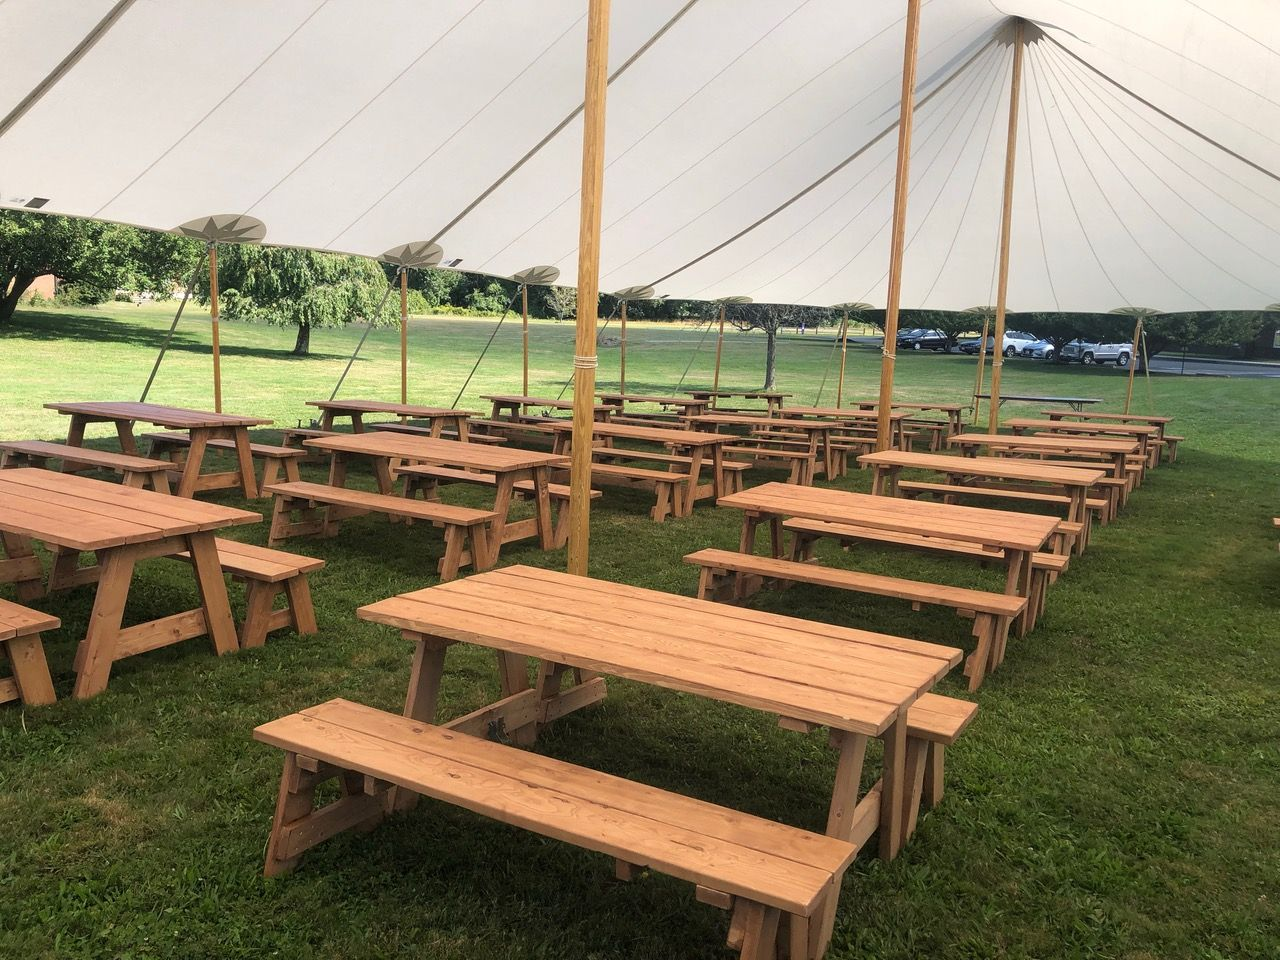 Add These Picnic Tables To Your Next Rental For A Rustic Natural Feel Picnictables Sailclothtent Rusticvibes Picnic Table Outdoor Chairs Table